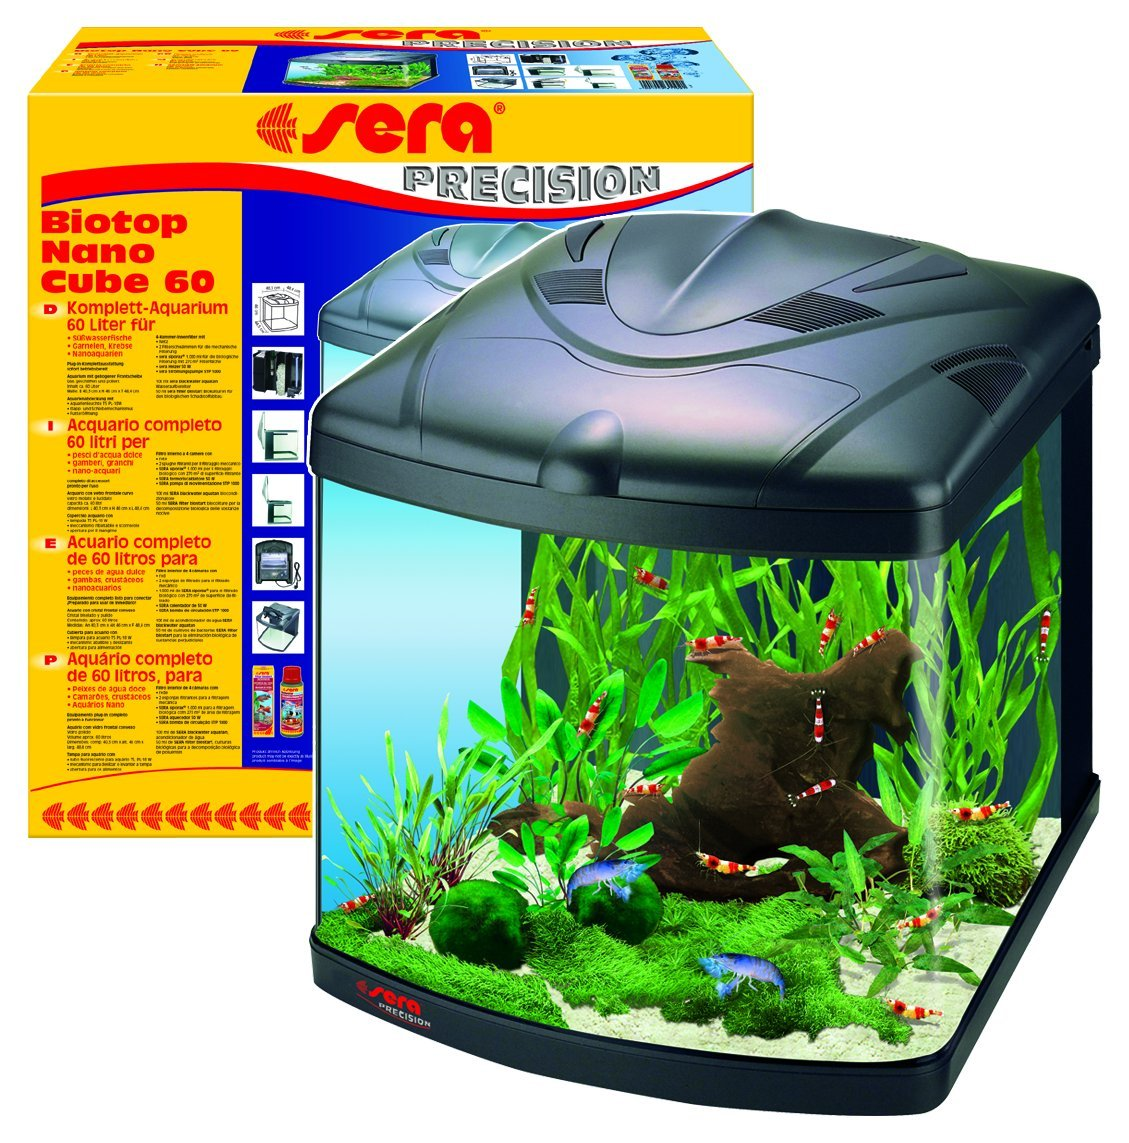 Amazon.com: Sera 15 Gallon Biotope 60 Nano Cube Aquarium: Everything Else